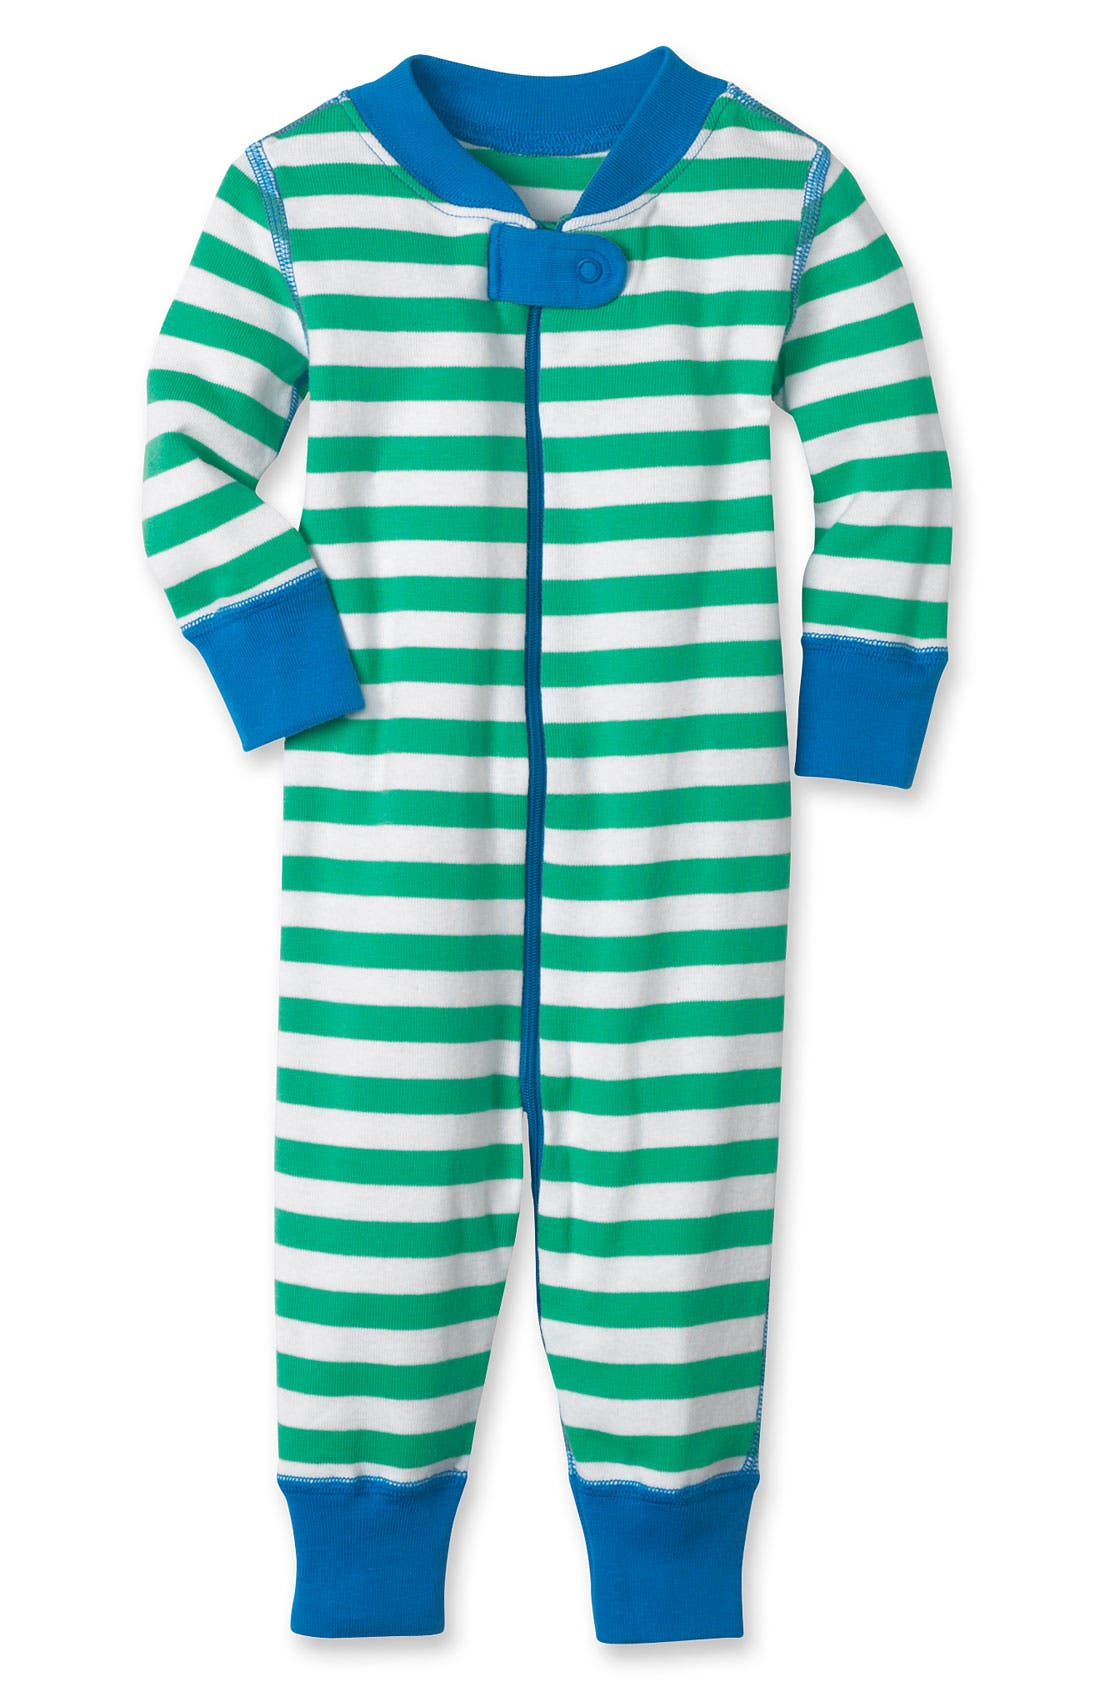 Main Image - Hanna Andersson Organic Cotton Fitted One-Piece Pajamas (Baby)